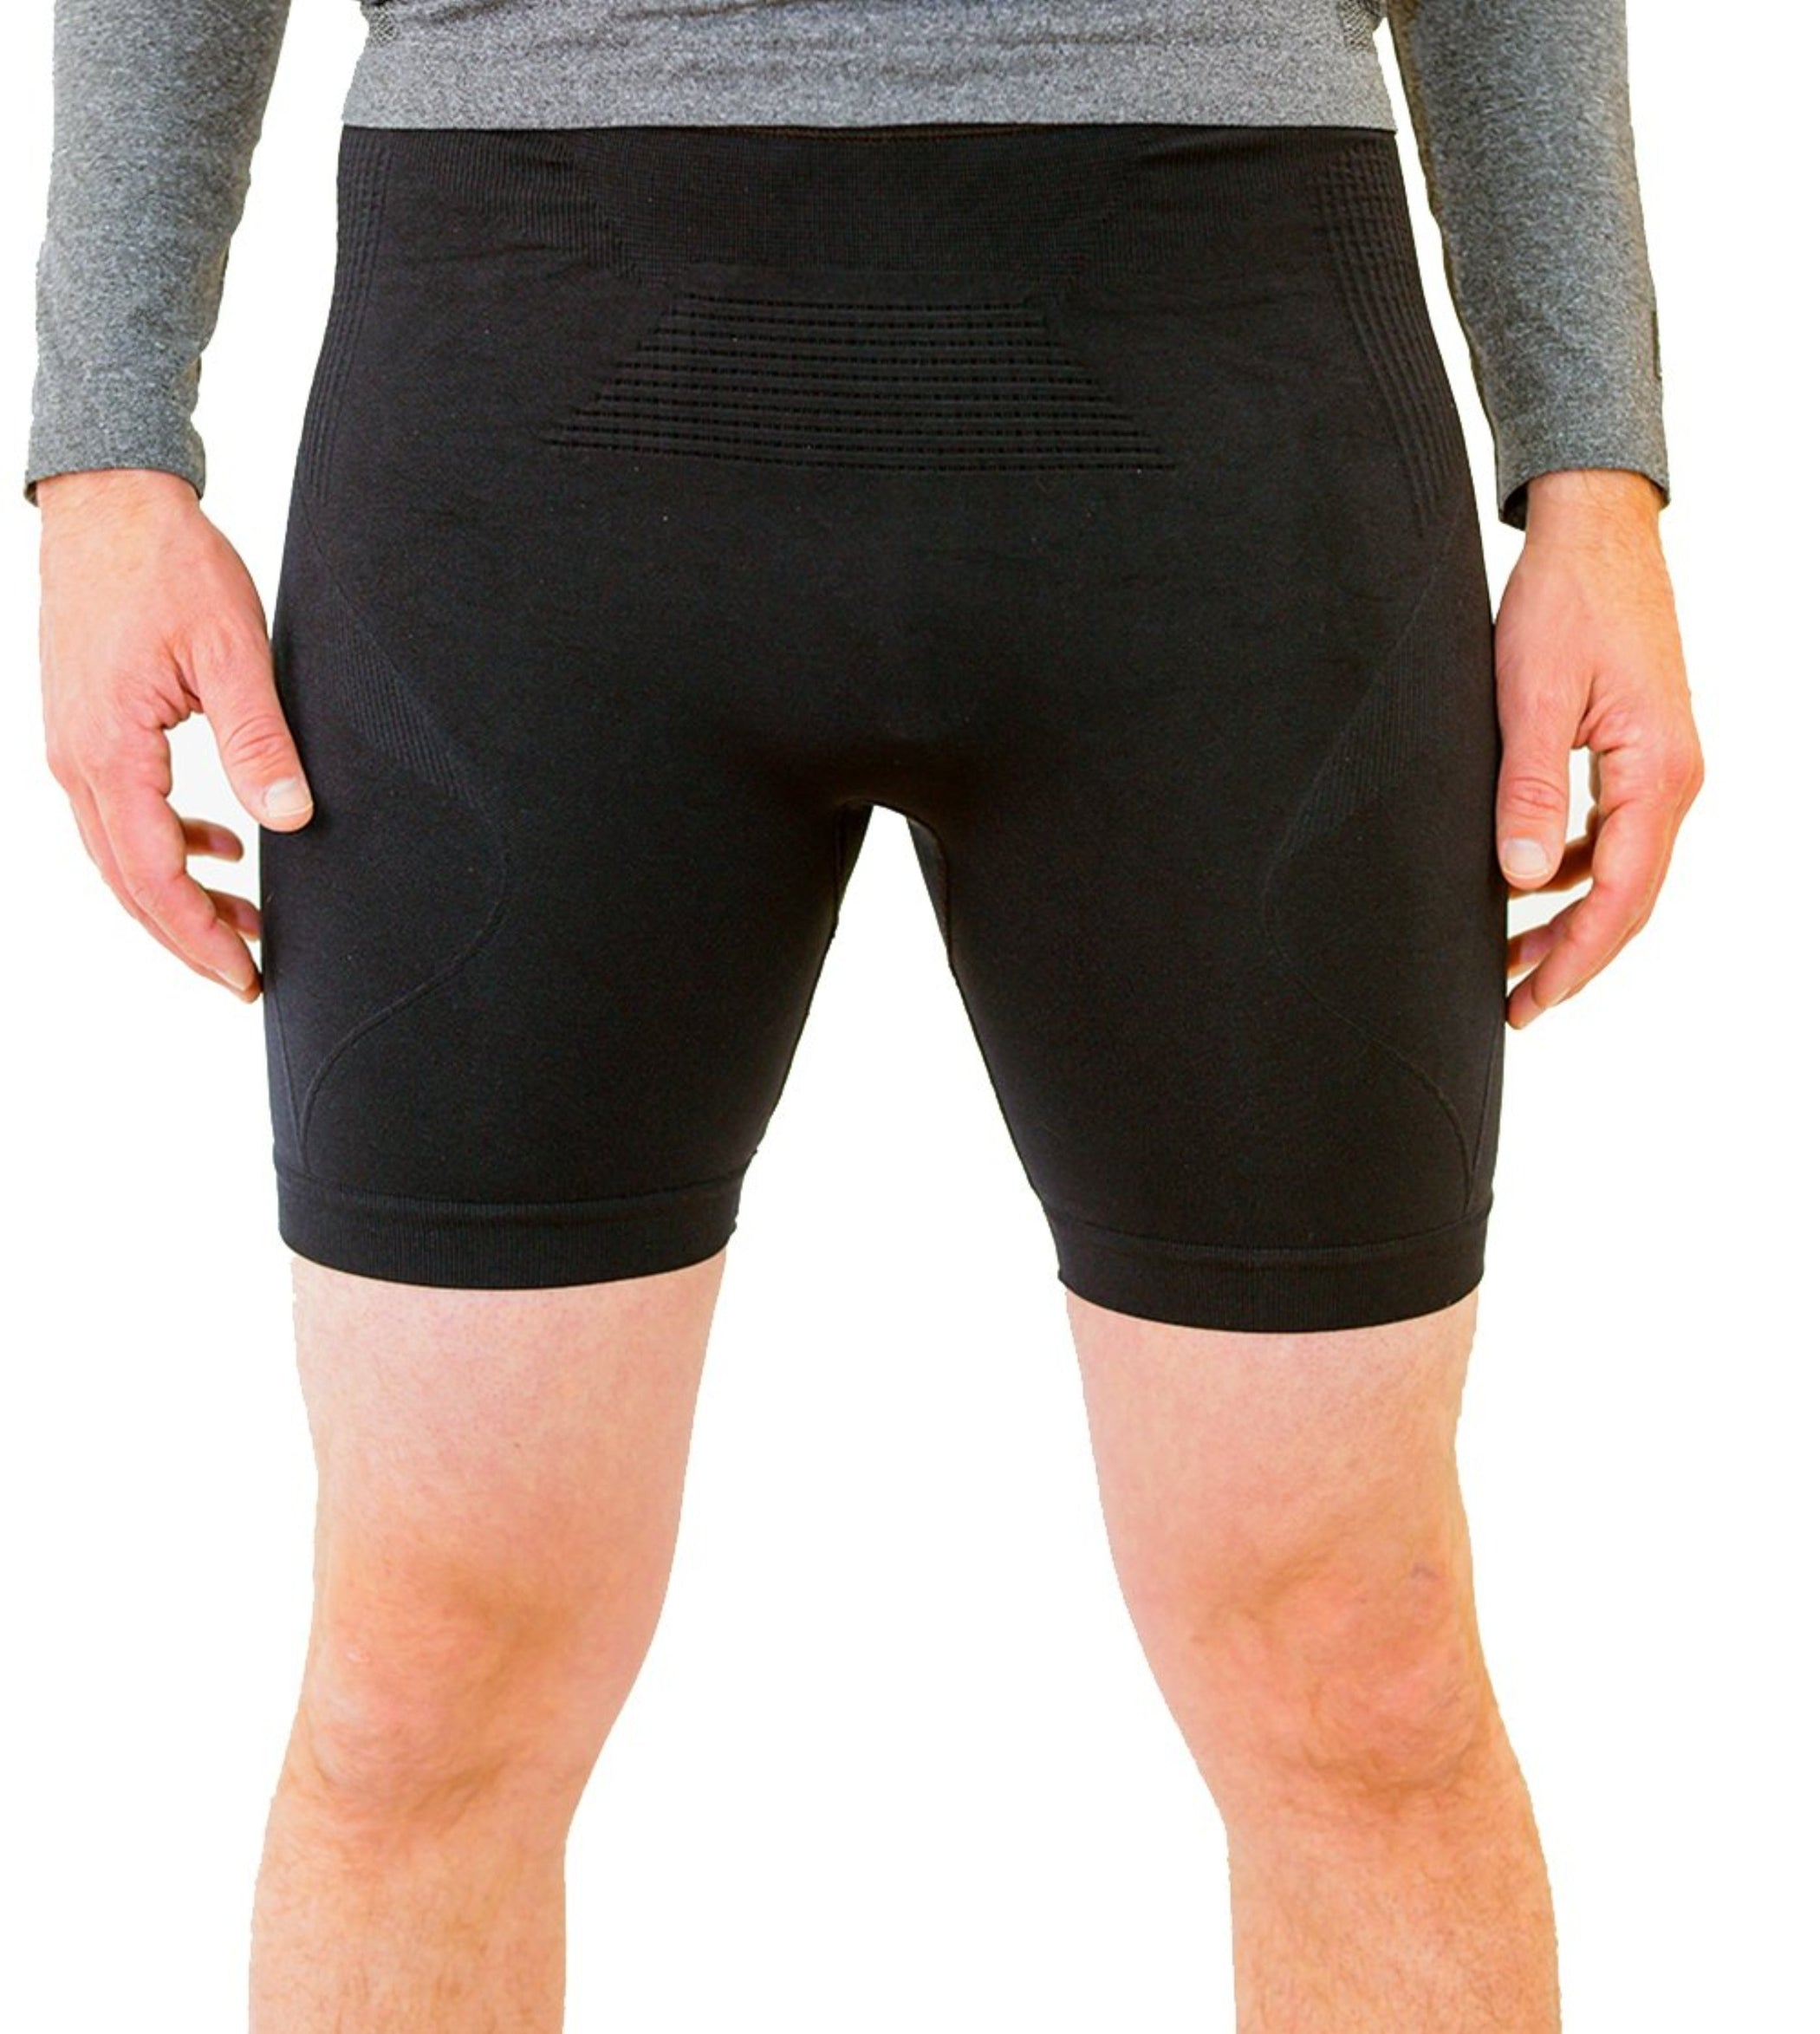 Black compression shorts with patented fully seamless front, pockets and 6 inch inseam. Front View.